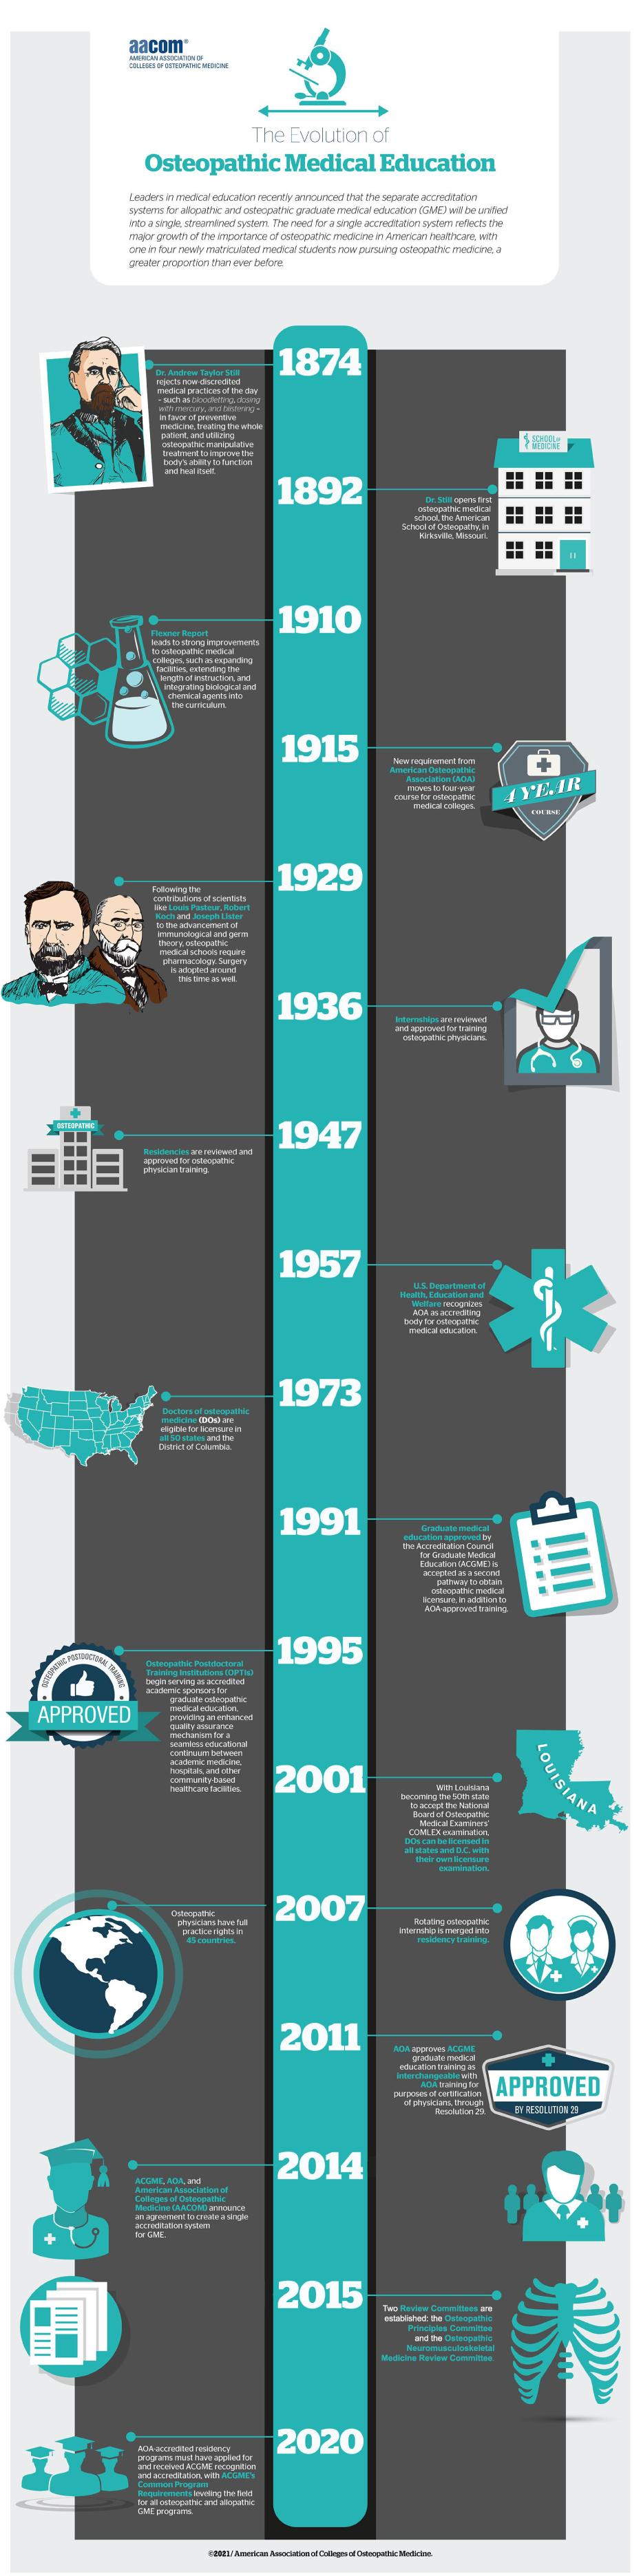 The Evolution of Osteopathic Medical Education